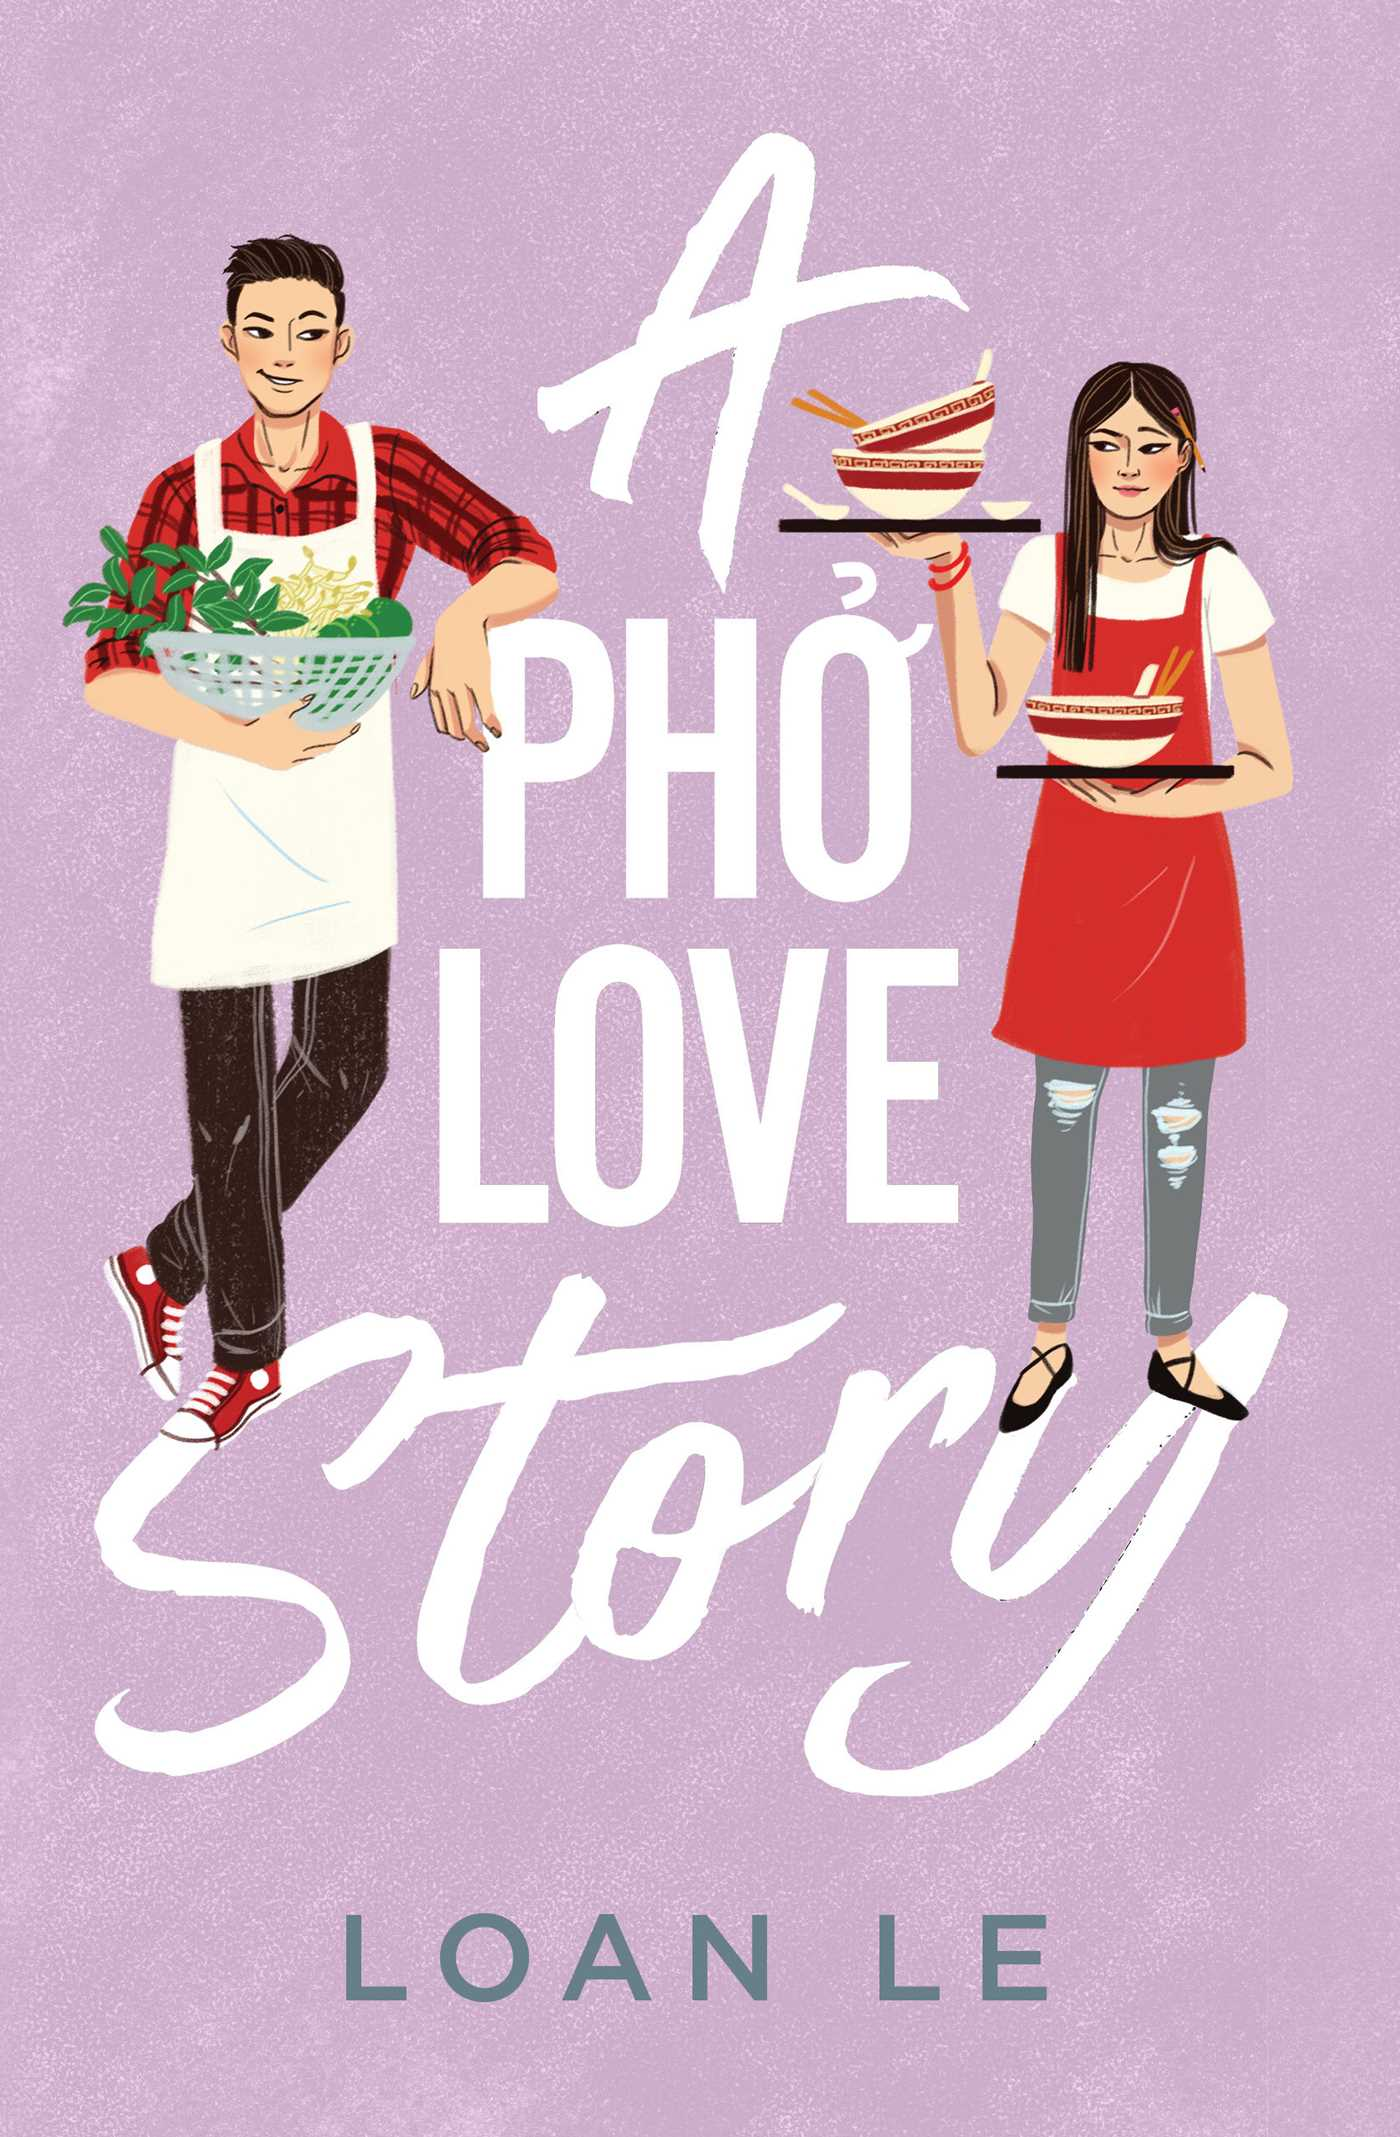 2021 book releases: A Pho Love Story by Loan Le